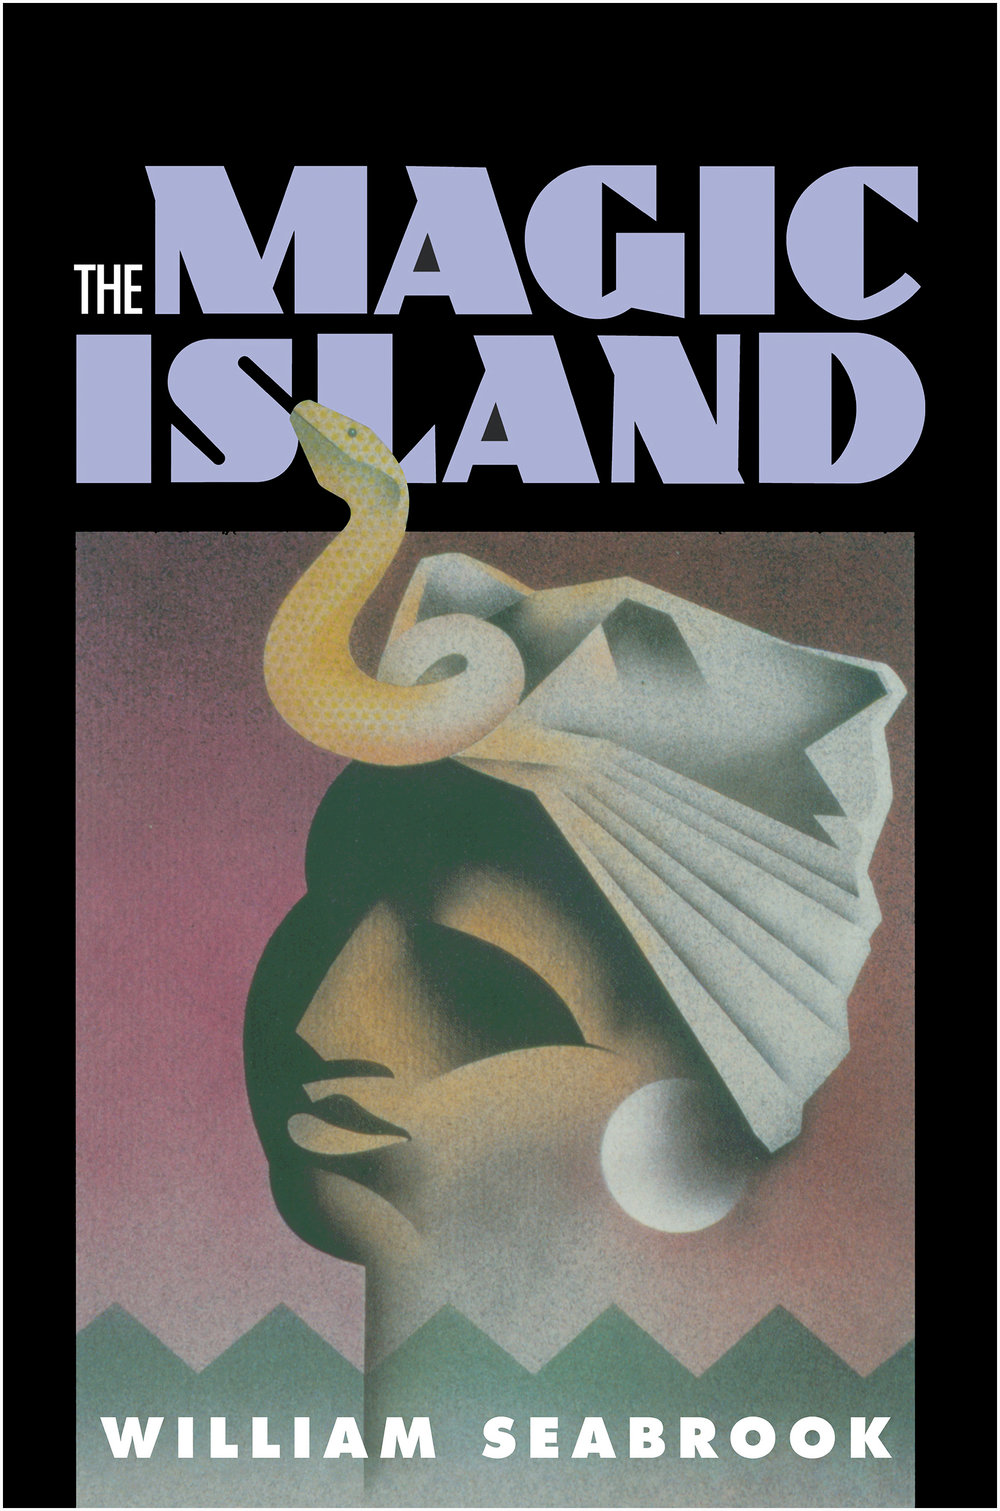 The Magid Island